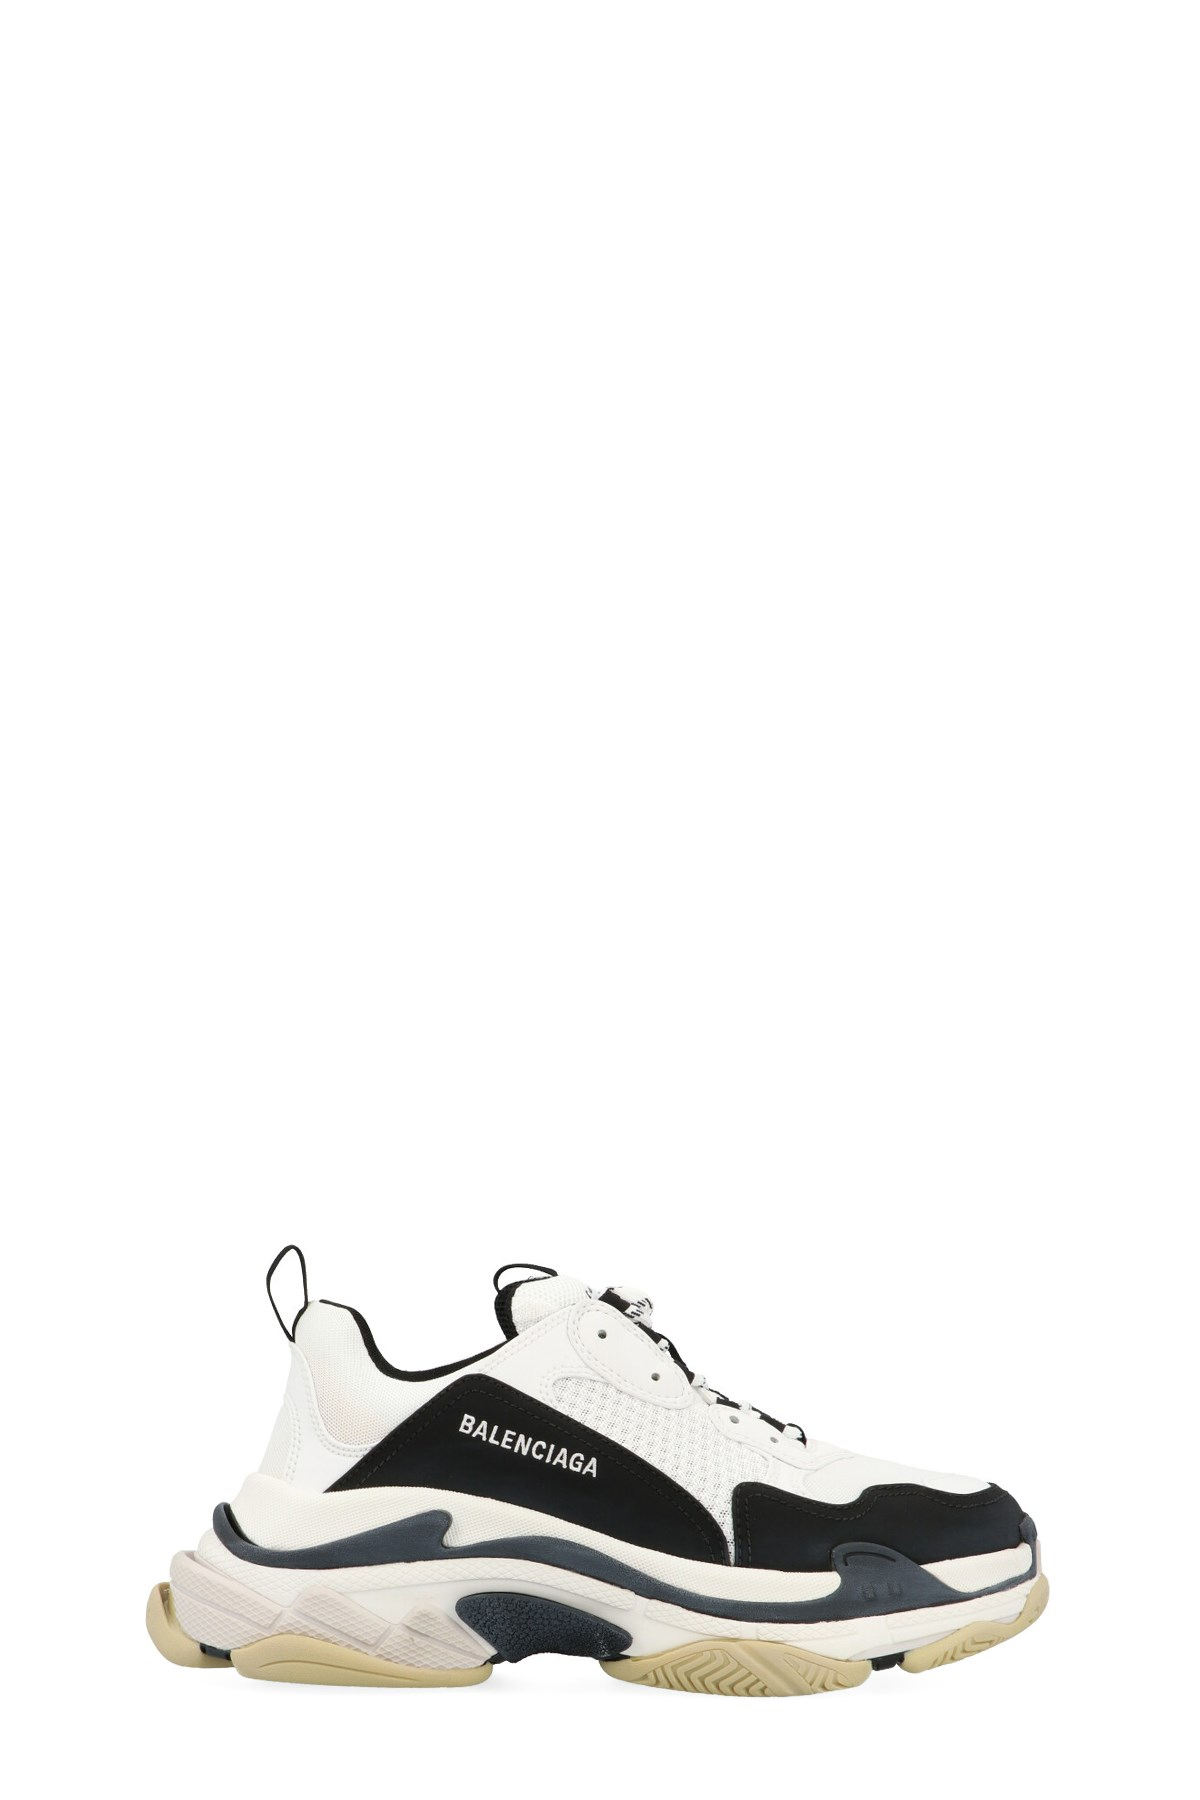 Balenciaga Triple S Air knit Mid Sock Black realkicks net